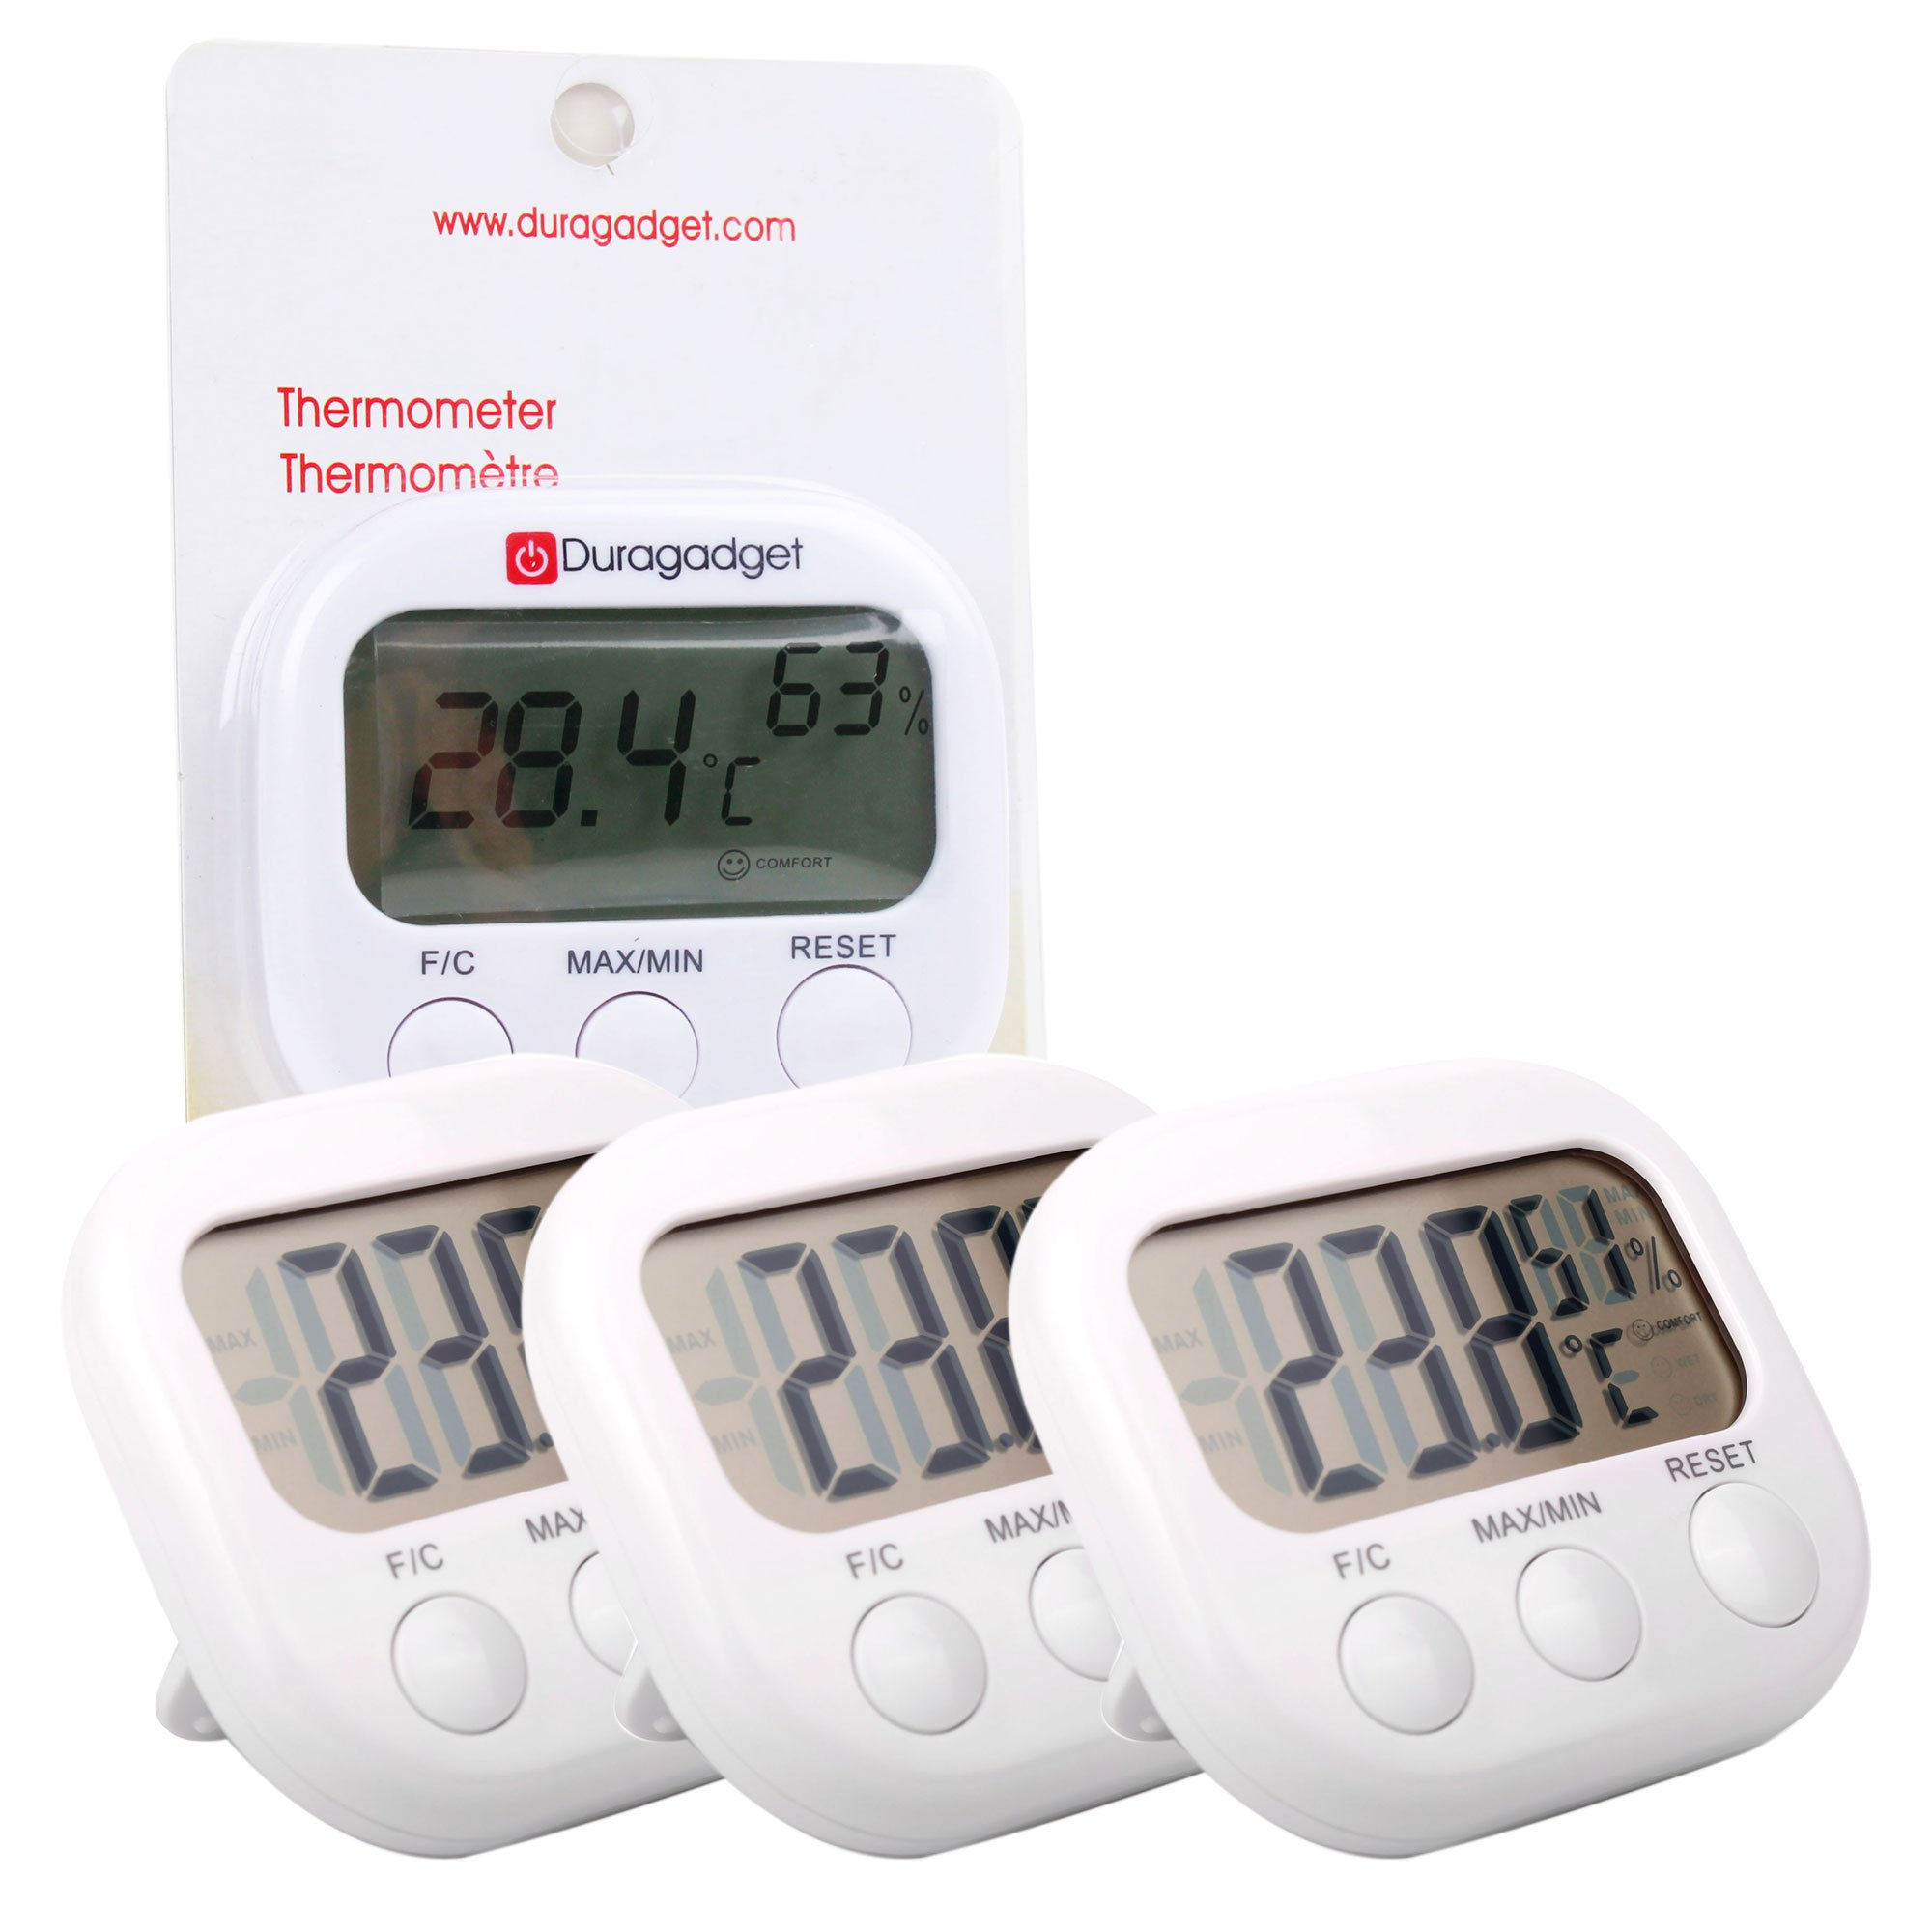 DURAGADGET Triple-Pack Small Indoor LCD Room Temperature & Humidity Thermometer/Gauge with Stand and Digital Display - Perfect for Use in The Office Or at Home